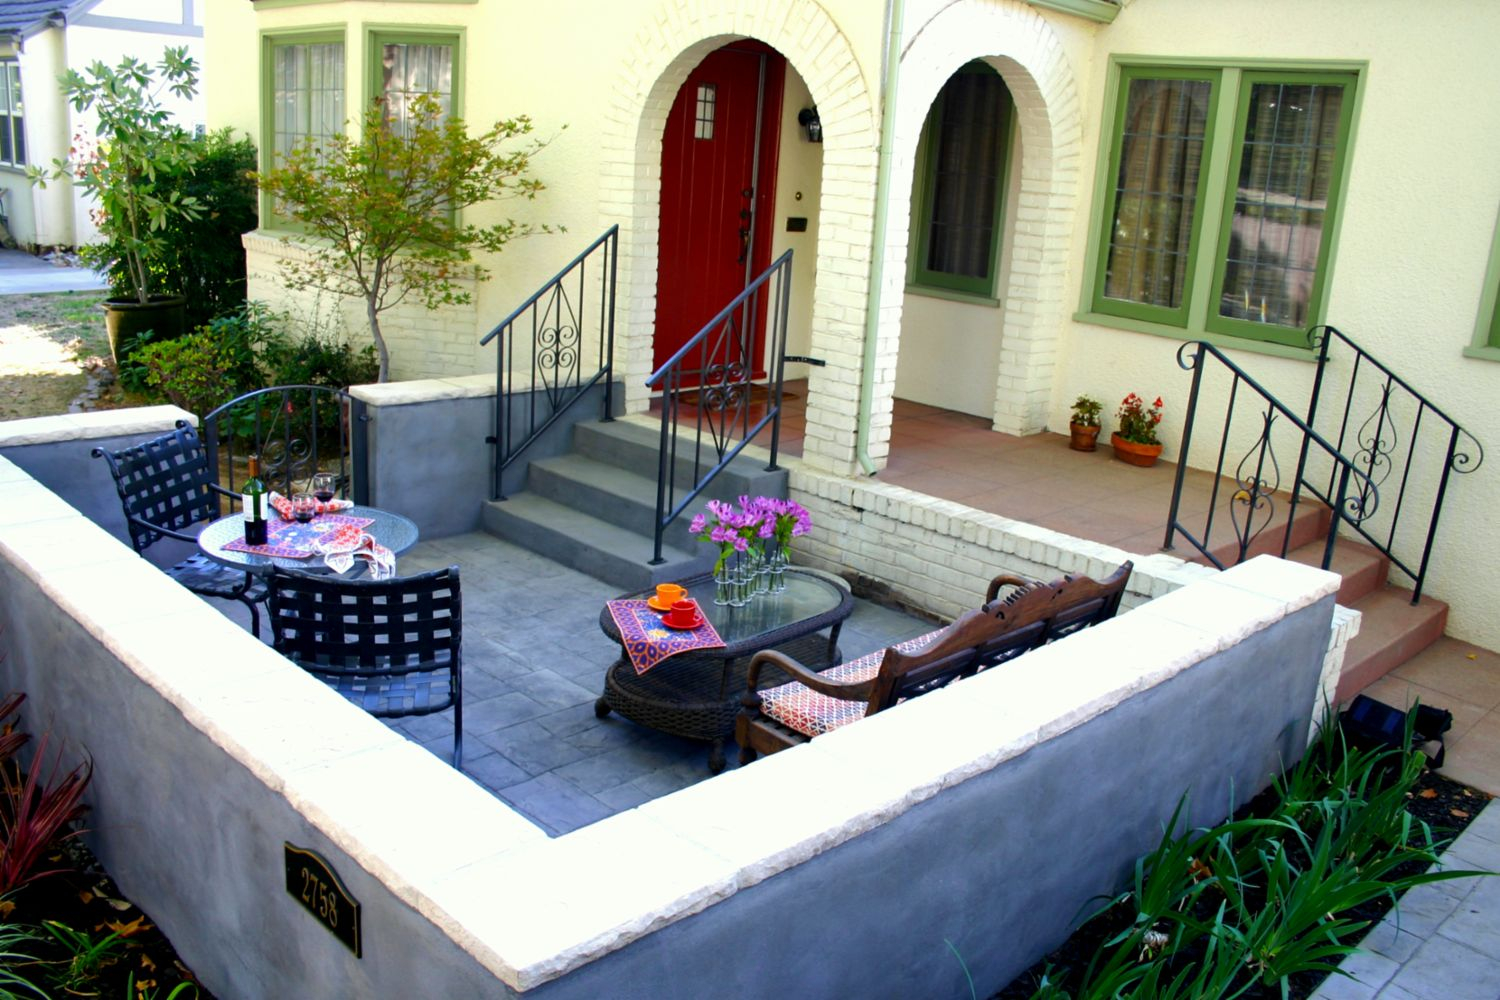 Inspirational Masonry And Concrete Works In Sacramento, Ca - California Backyard within Fresh California Backyard Roseville